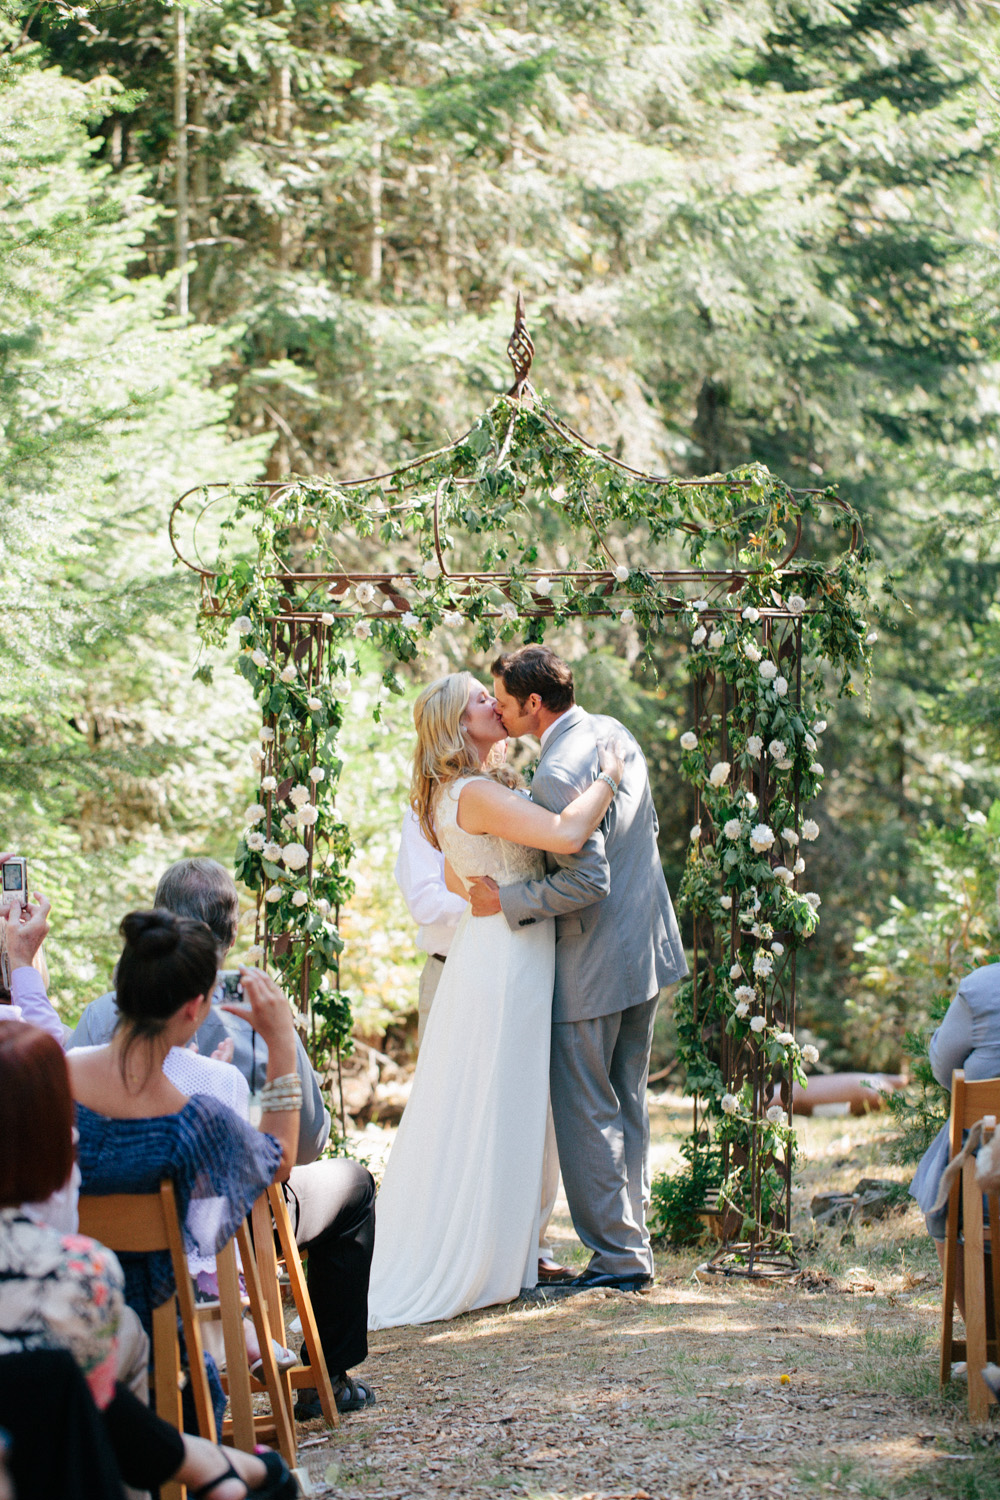 Woodsy-Outdoor-Ashland-Oregon-Wedding-60.jpg